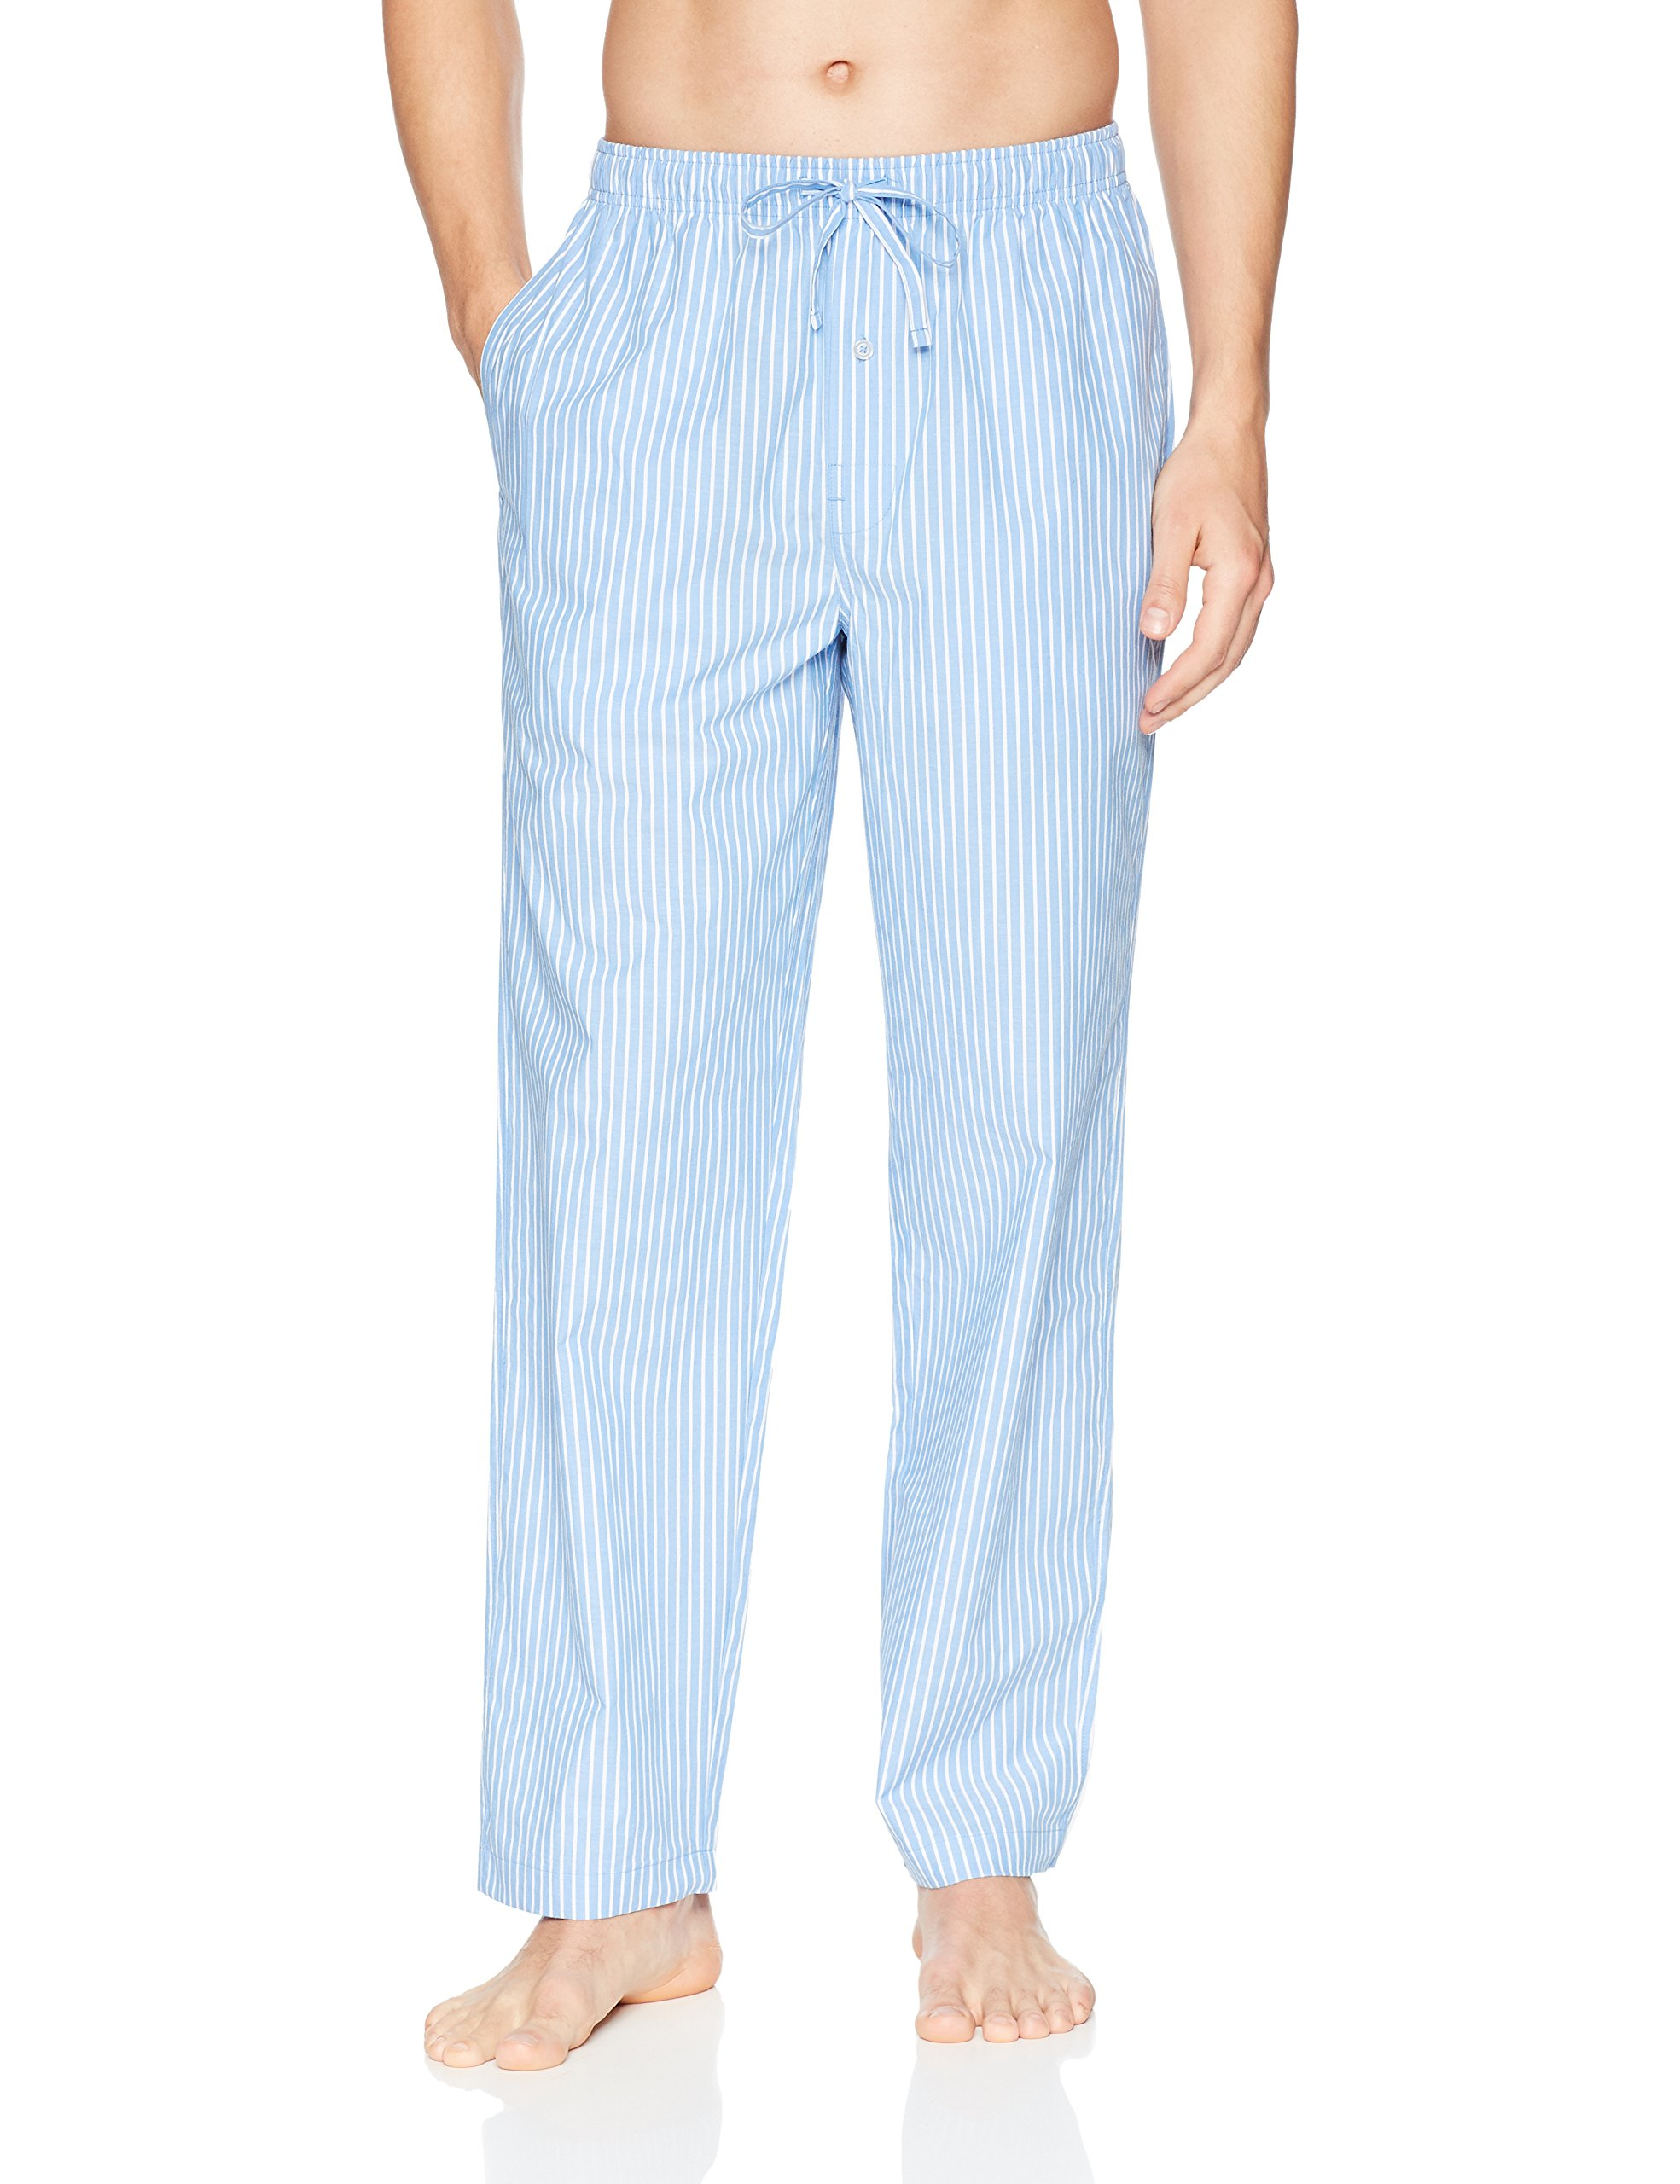 Amazon Essentials Men's Woven Pajama Pant, Light Blue Stripe, Medium